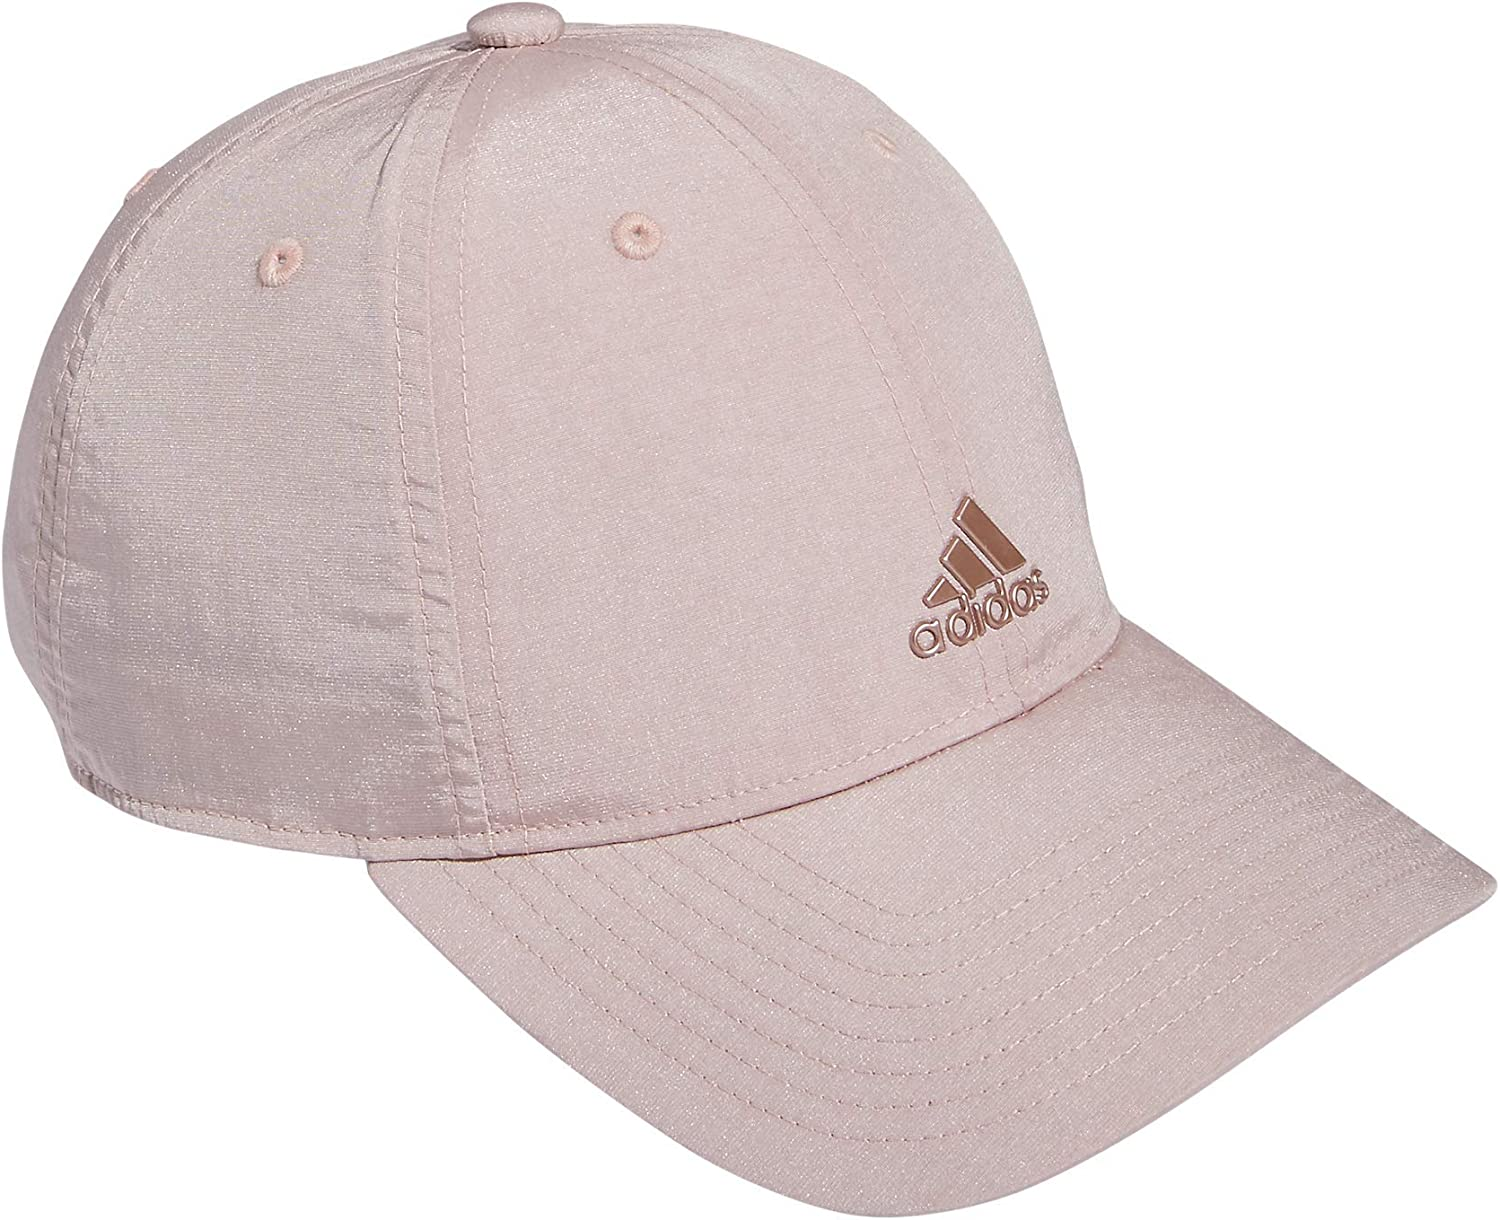 adidas Women's VFA 2 Relaxed Fit Adjustable Performance Cap